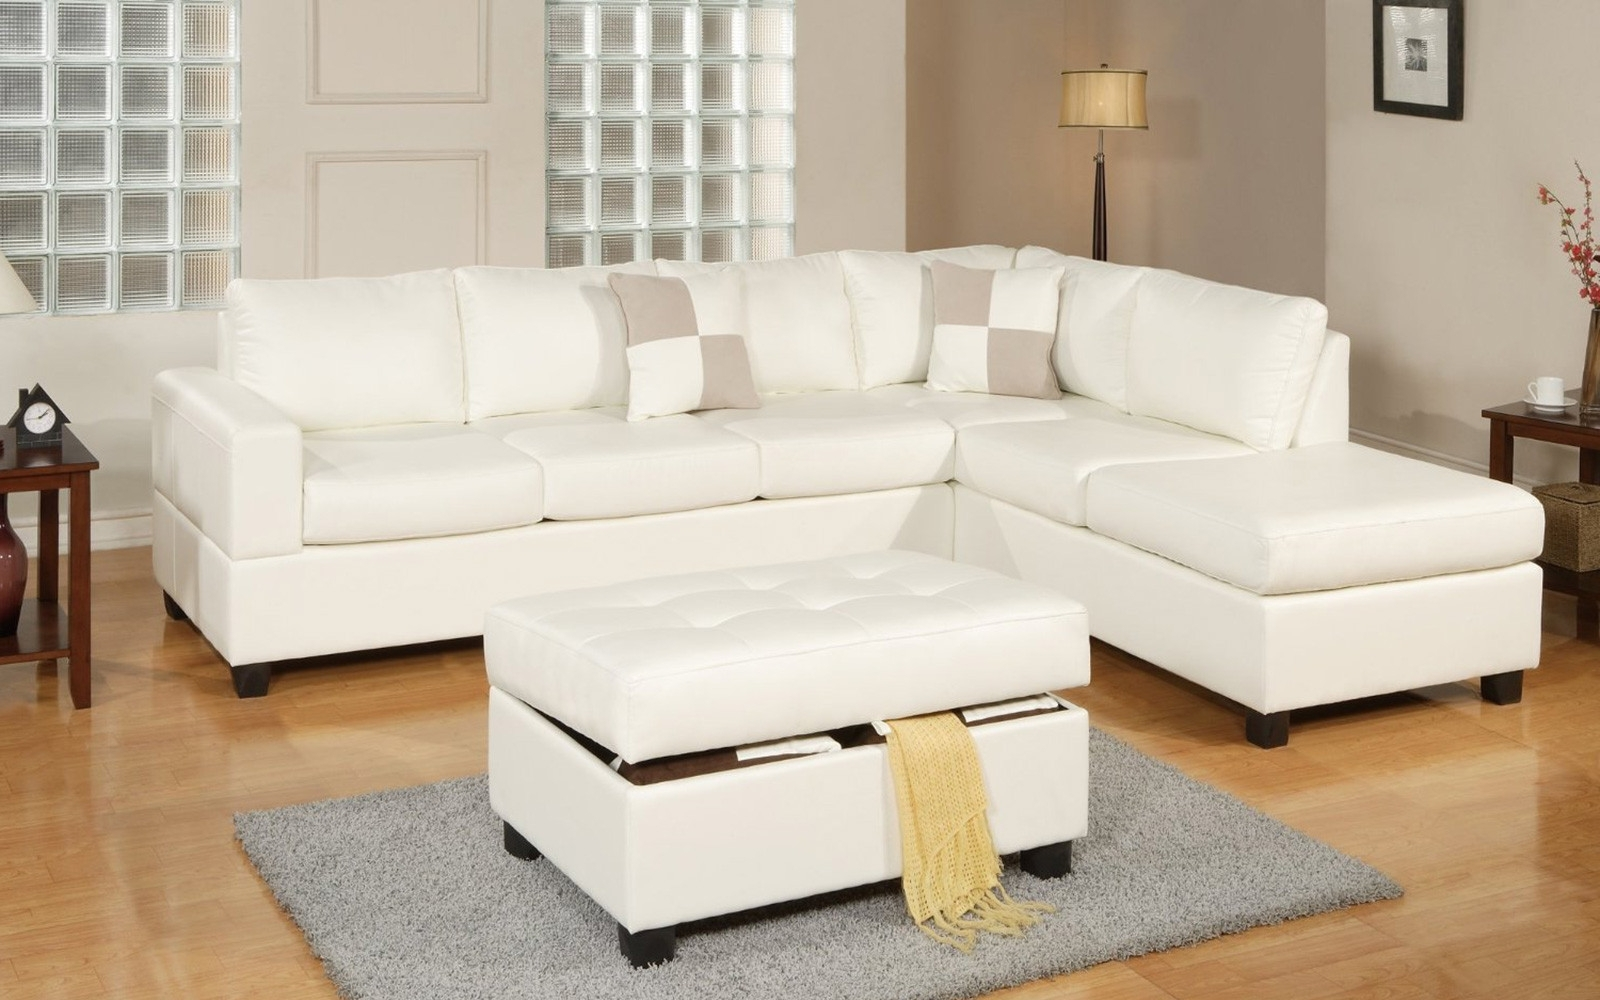 3 Piece Modern Reversible Tufted Bonded Leather Sectional Sofa regarding Newest White Sectional Sofas With Chaise